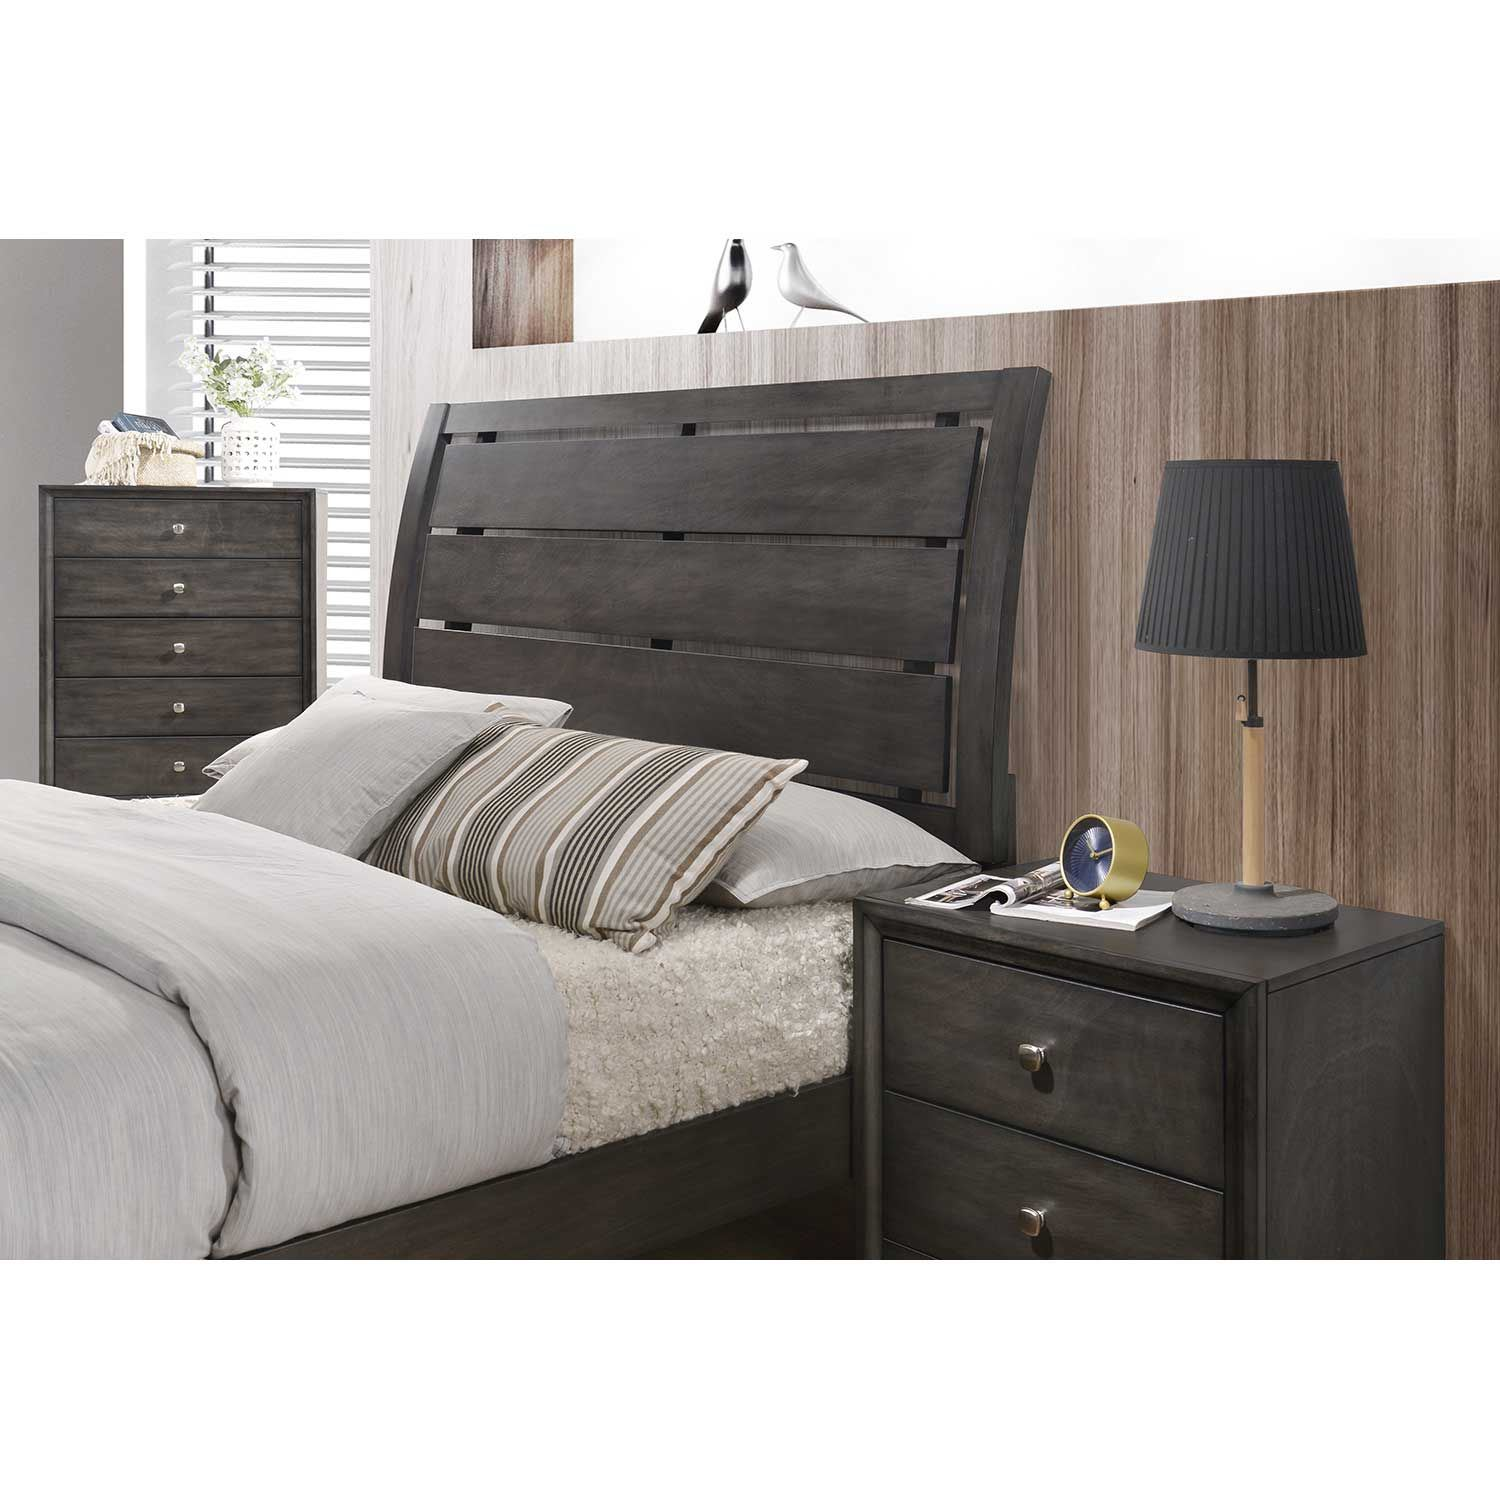 Picture of Grant Queen Panel Bed